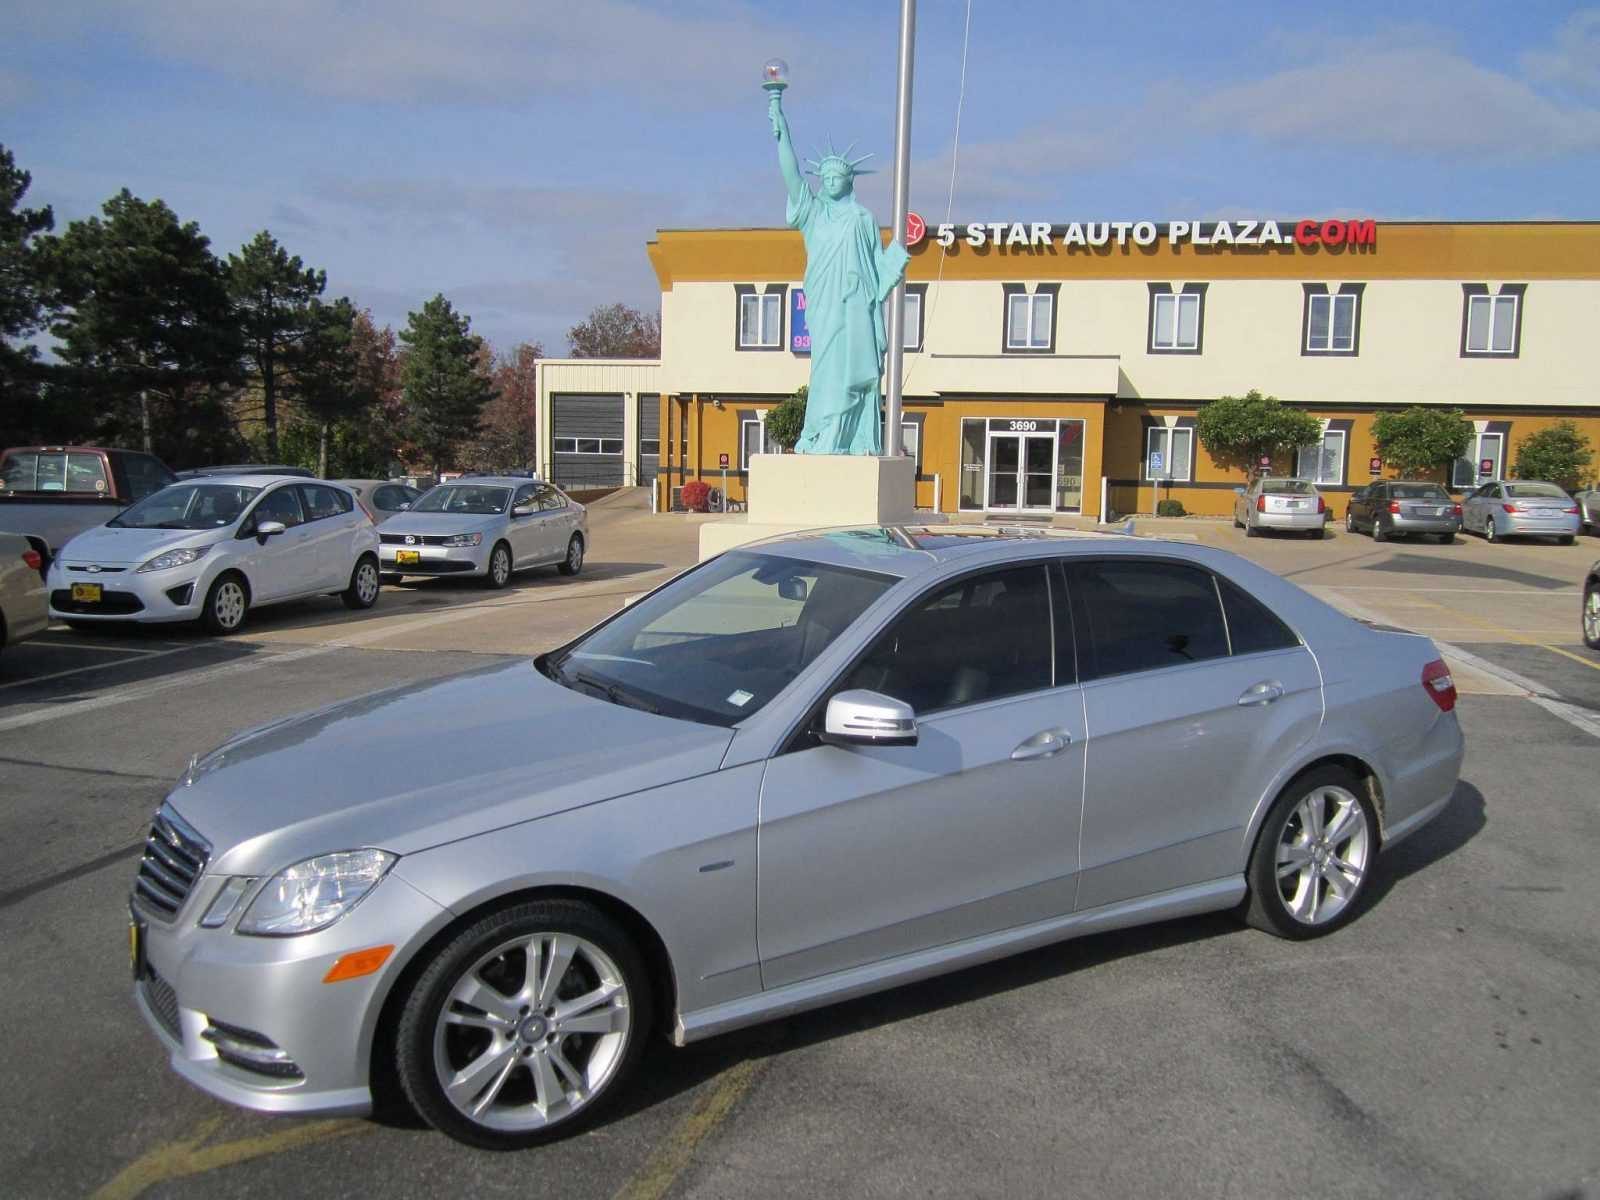 Pre owned mercedes cars for sale in st charles mo for Used mercedes benz cars for sale